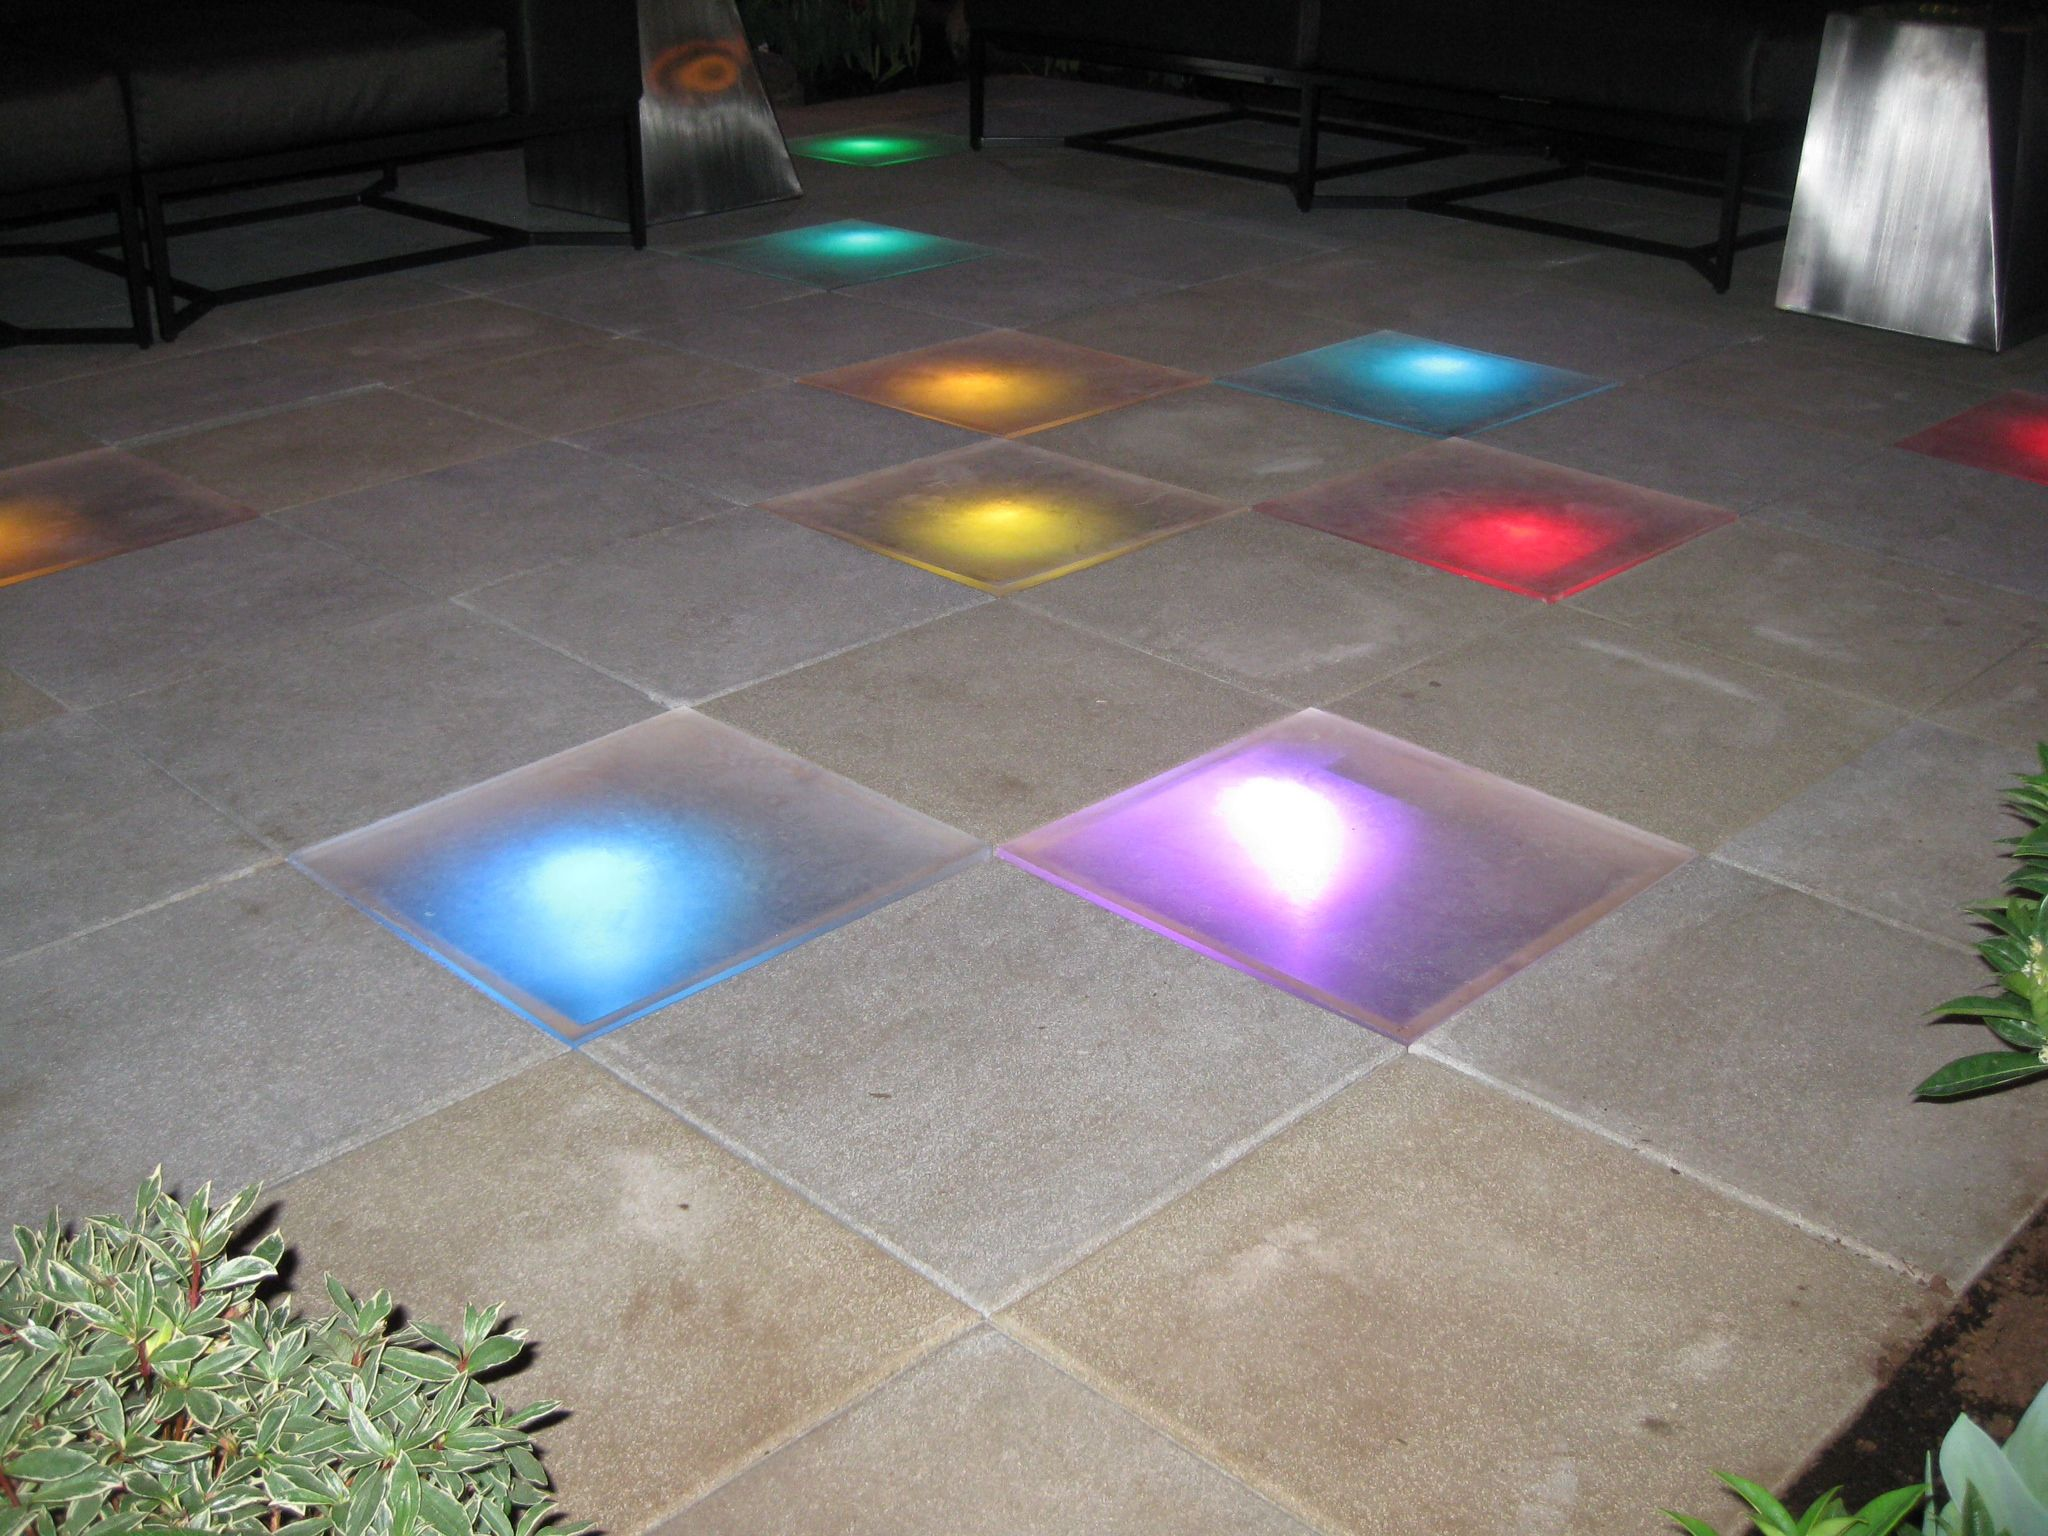 Light Up The Floor Light Up Your Outdoor Floor Way Cool Glass Art In The